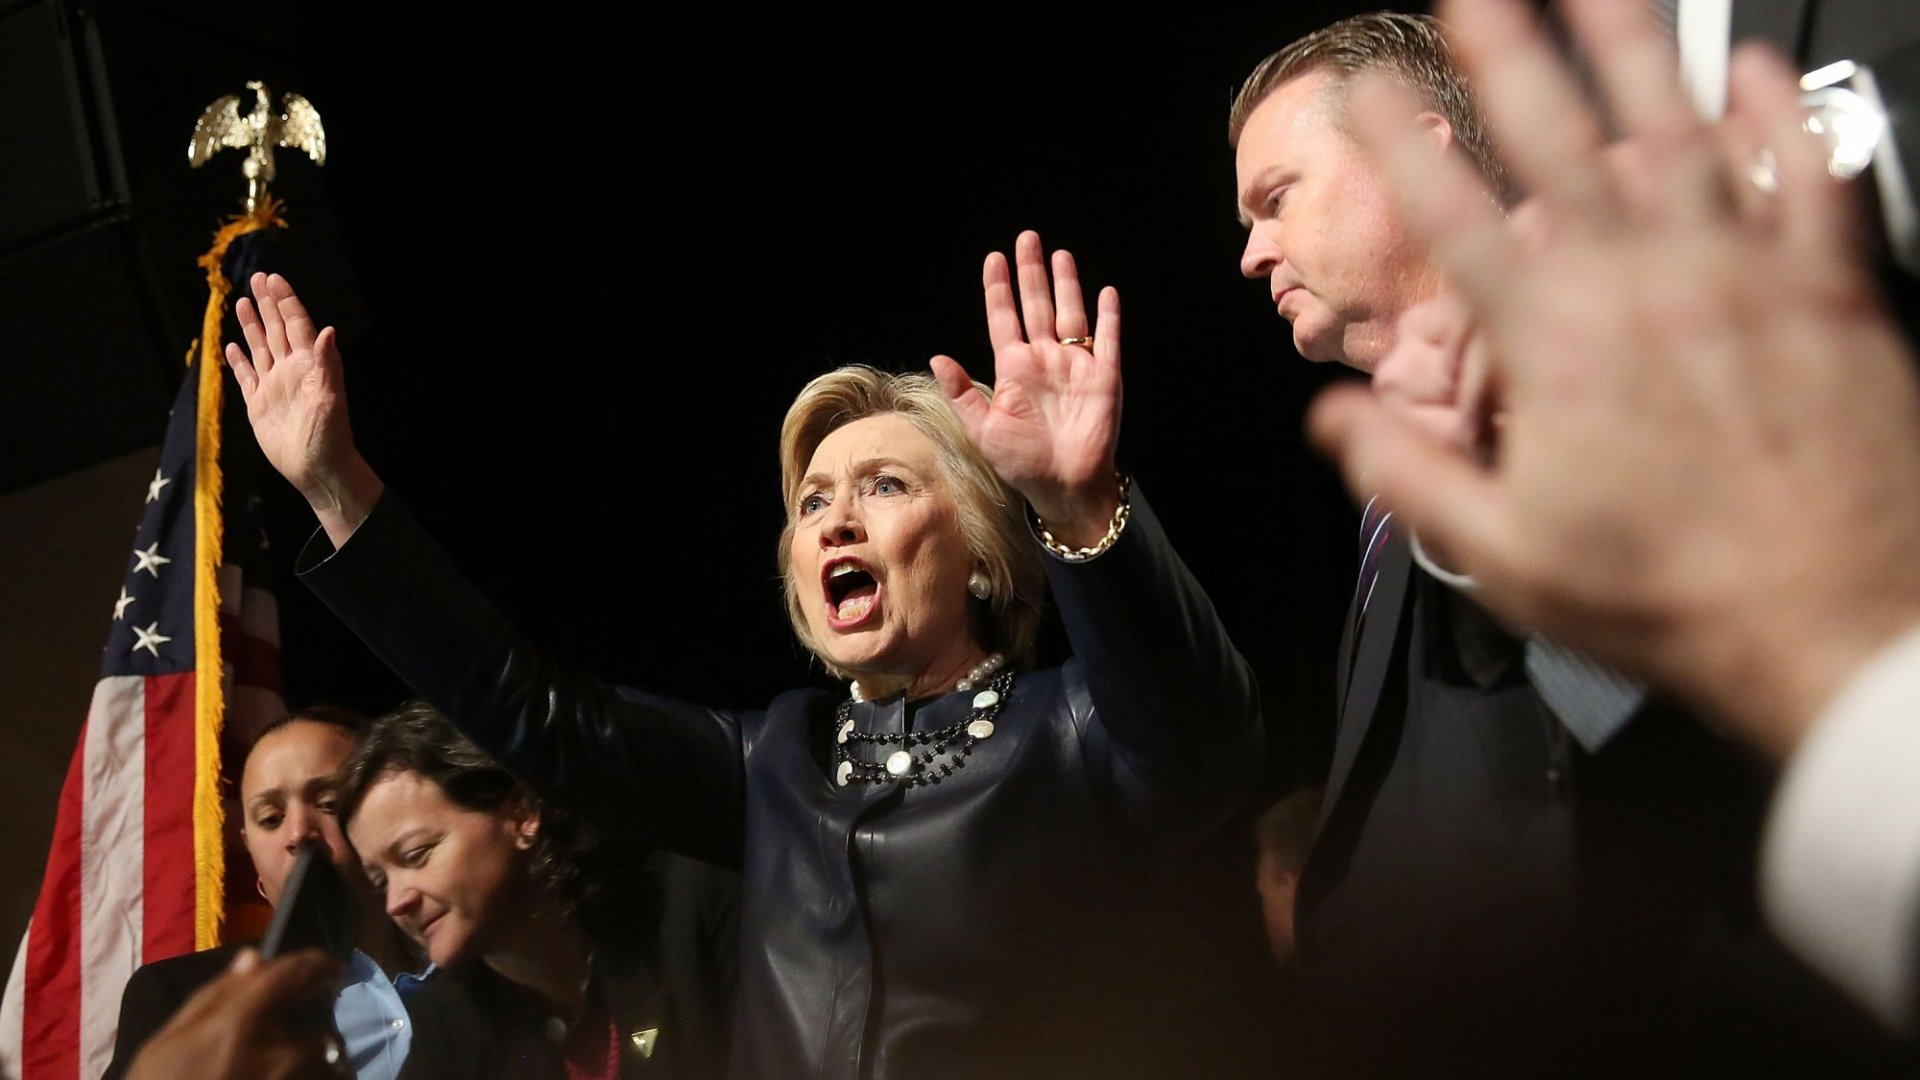 How Hillary Clinton is Doubling Down on Attracting Millennial Voters